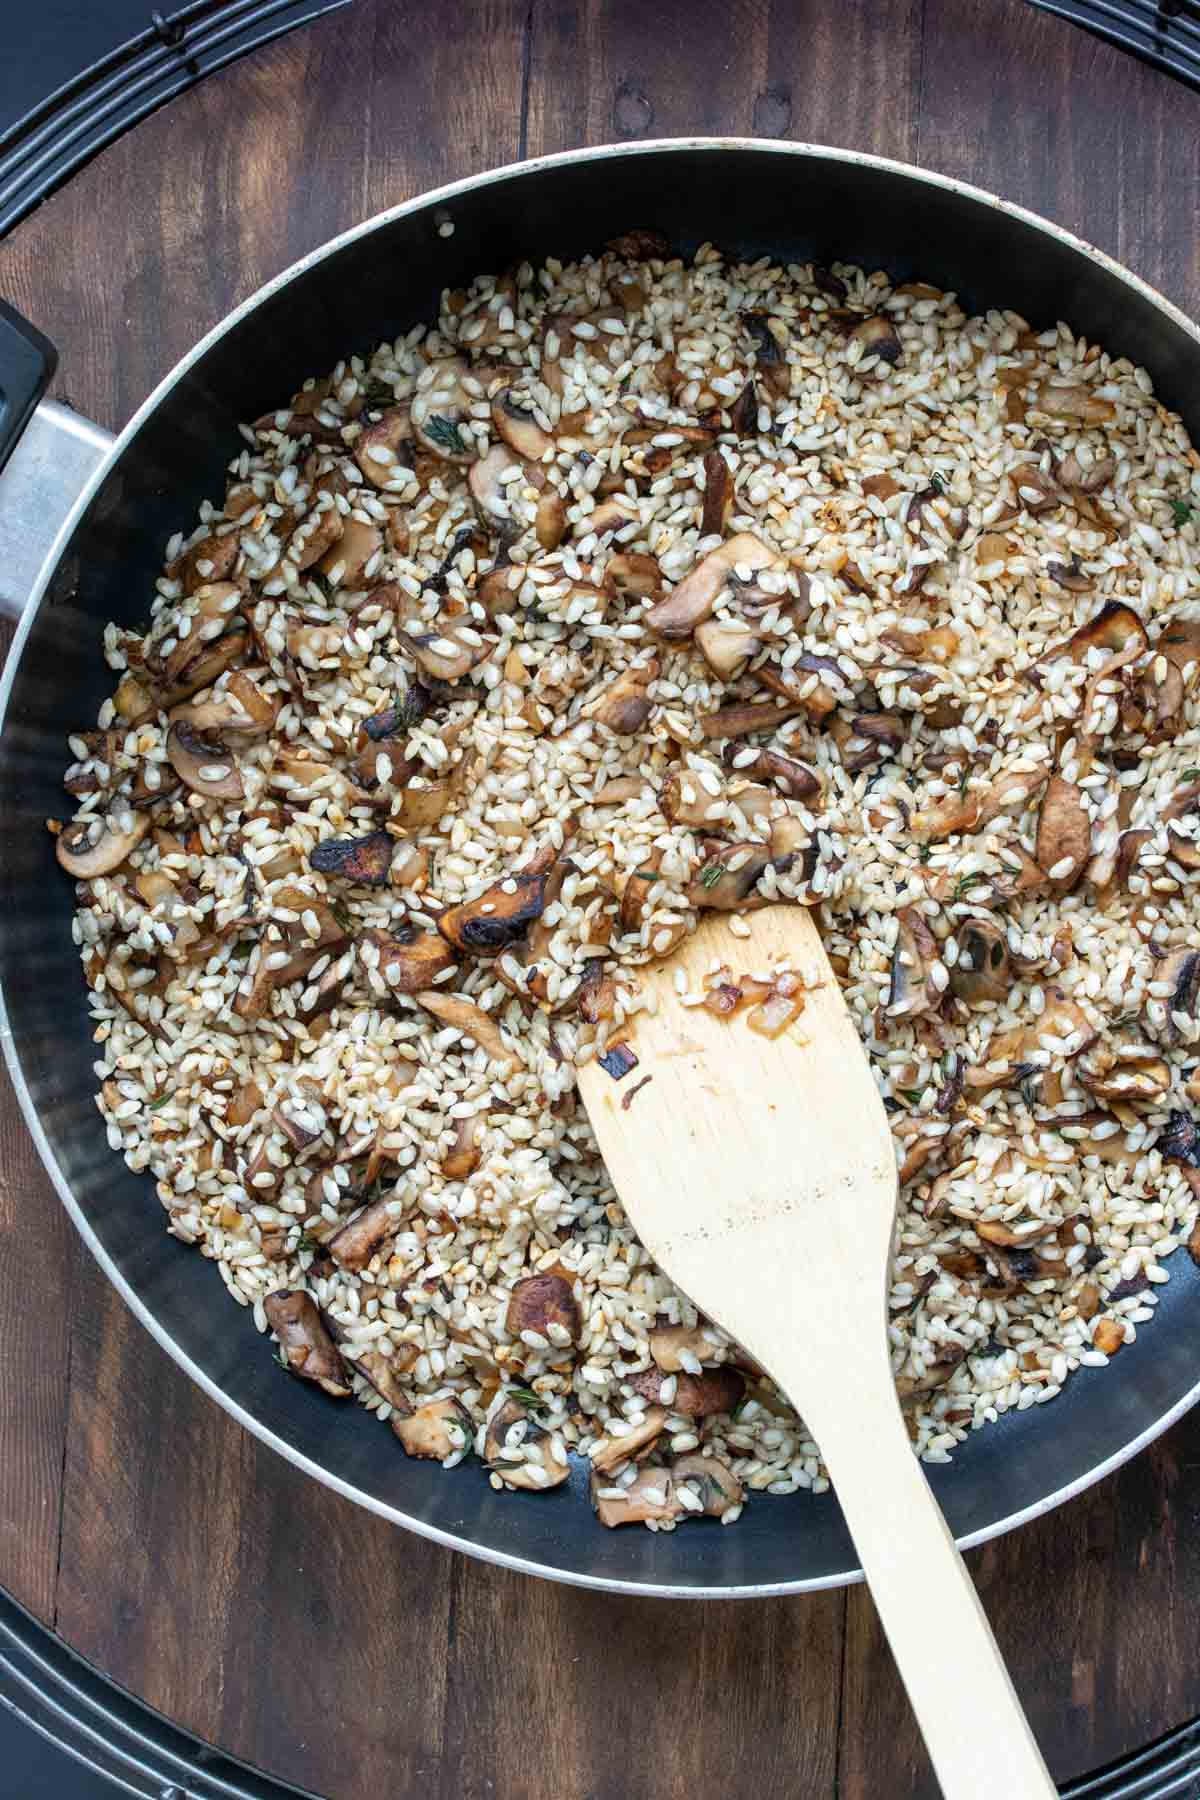 Pan filled with mushrooms and uncooked rice being browned